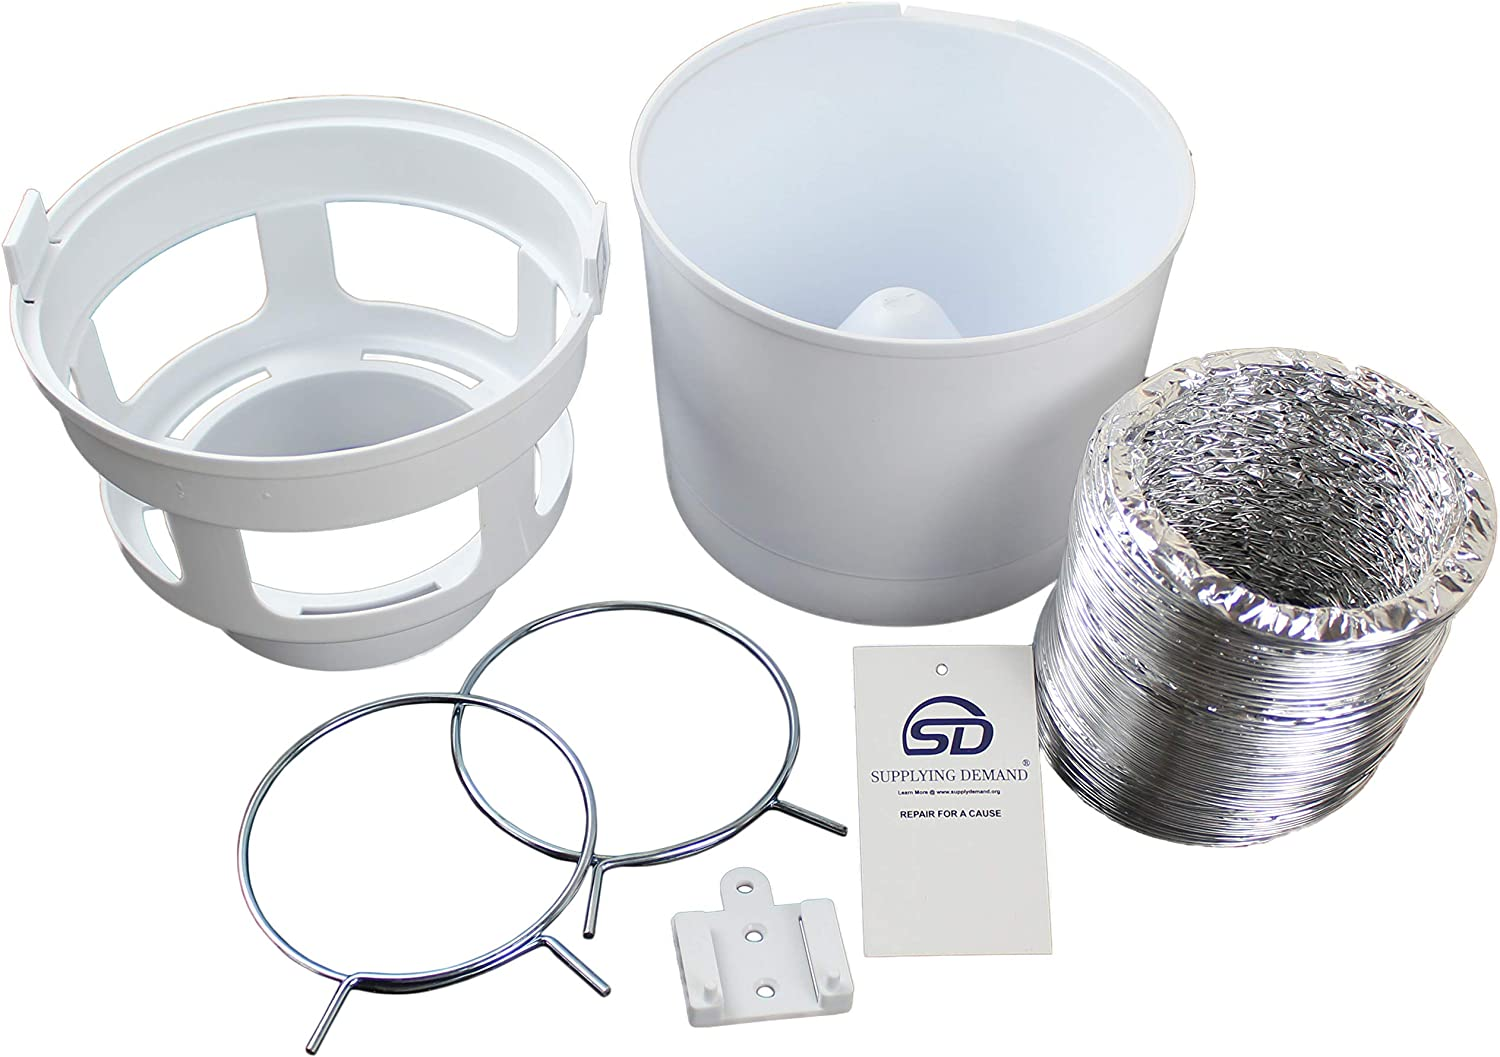 Supplying Demand 211 Indoor Dryer Vent Kit For Apartments Or Living Spaces With Poor Venting Compatible With Lambro